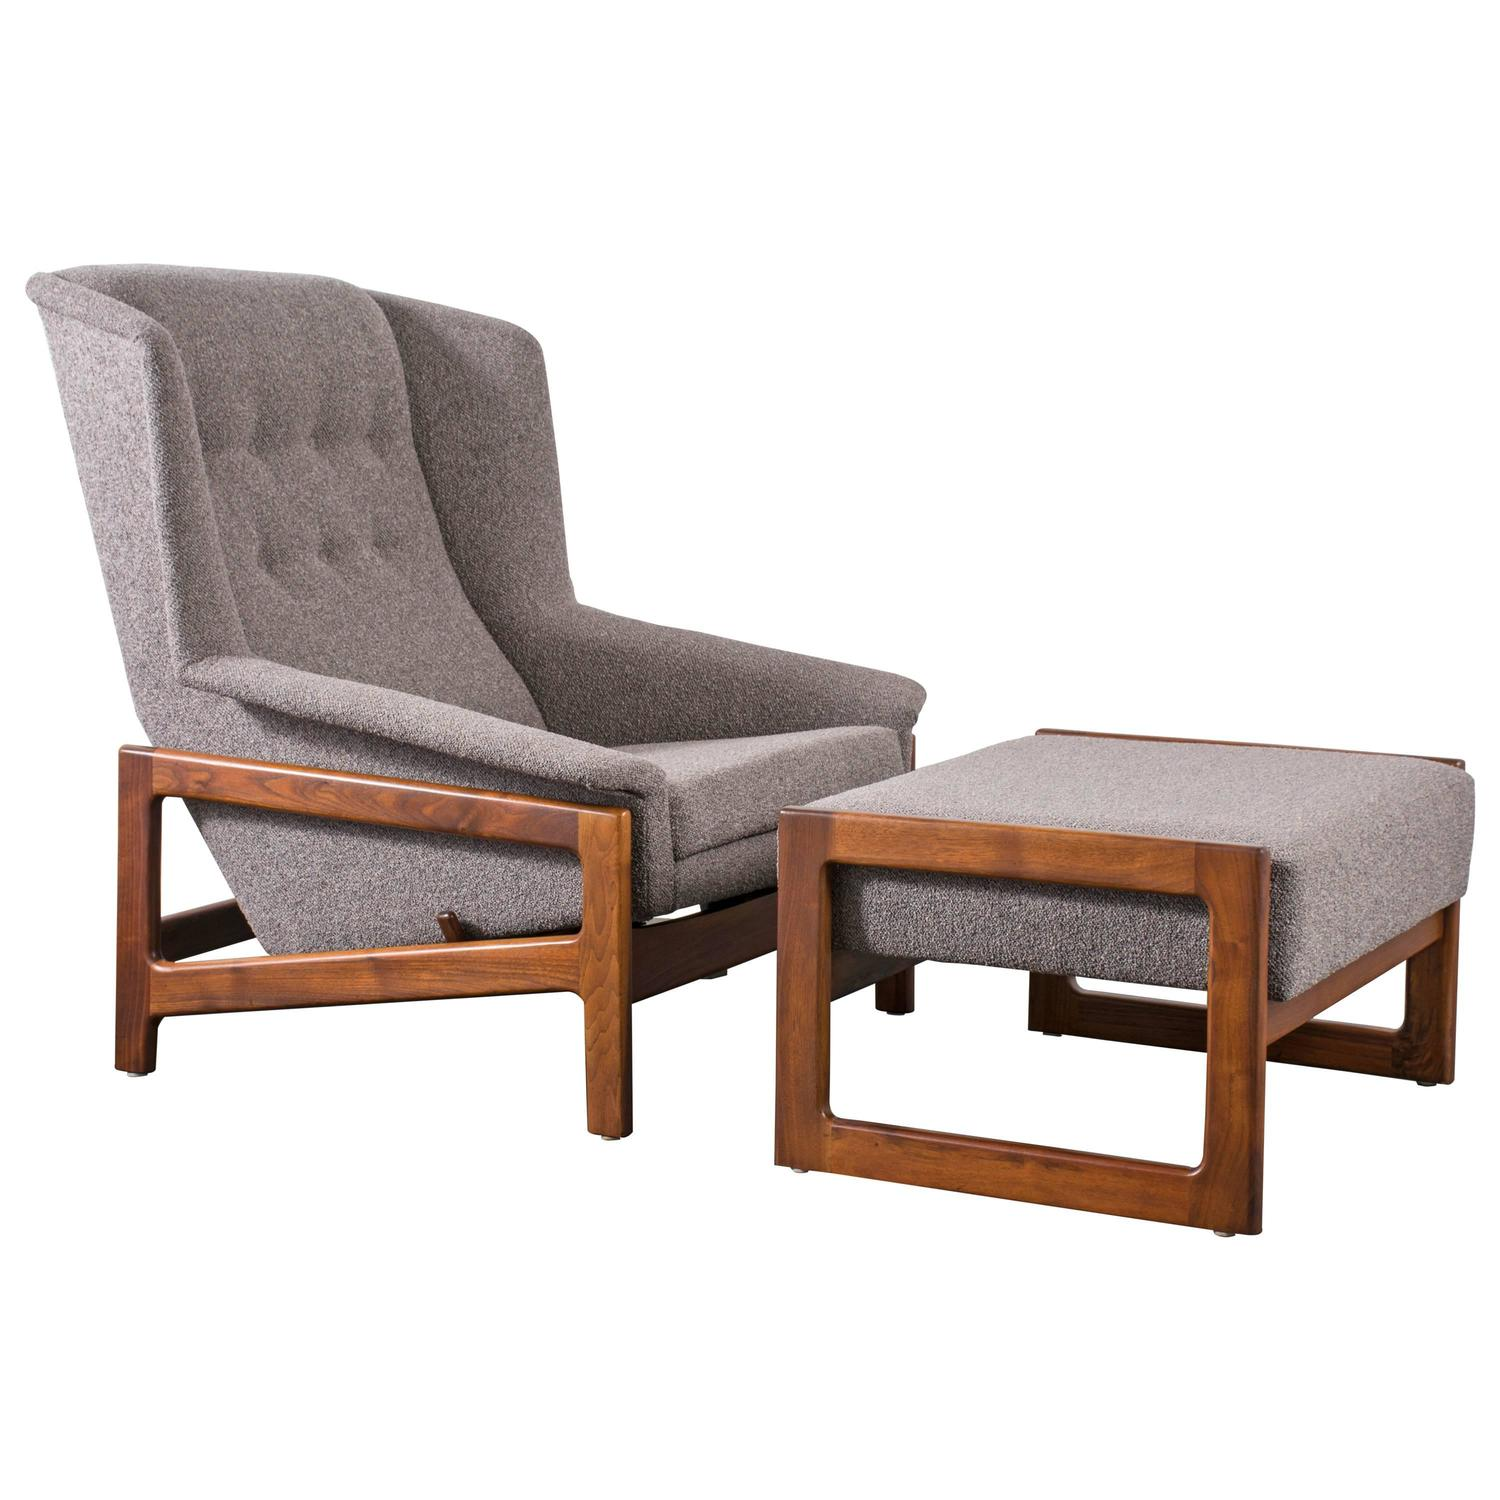 Mid Century Chair And Ottoman: Vintage Mid-Century Lounge Chair And Ottoman By DUX At 1stdibs